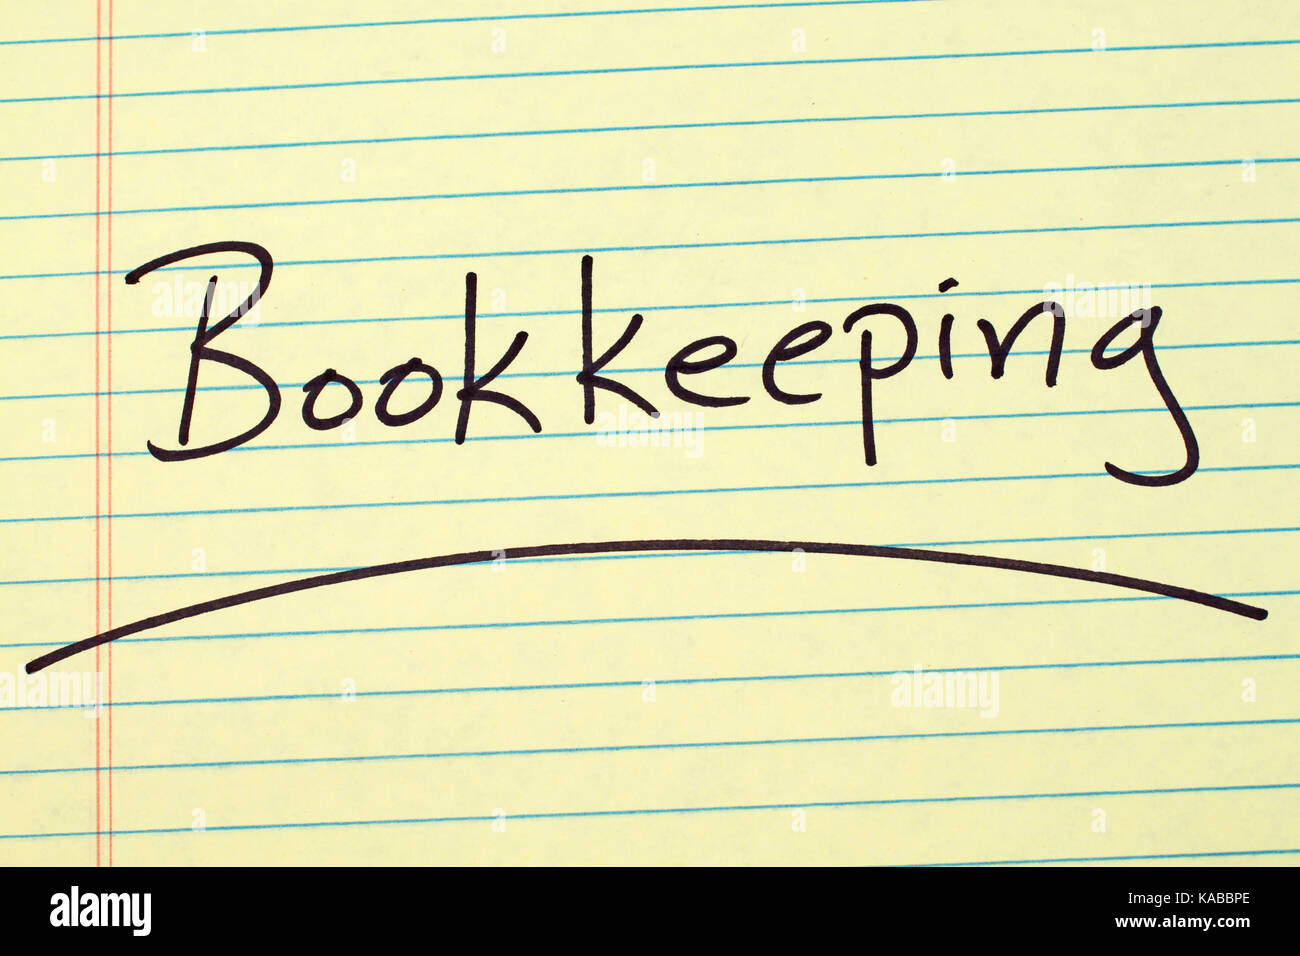 The word 'Bookkeeping' underlined on a yellow legal pad - Stock Image